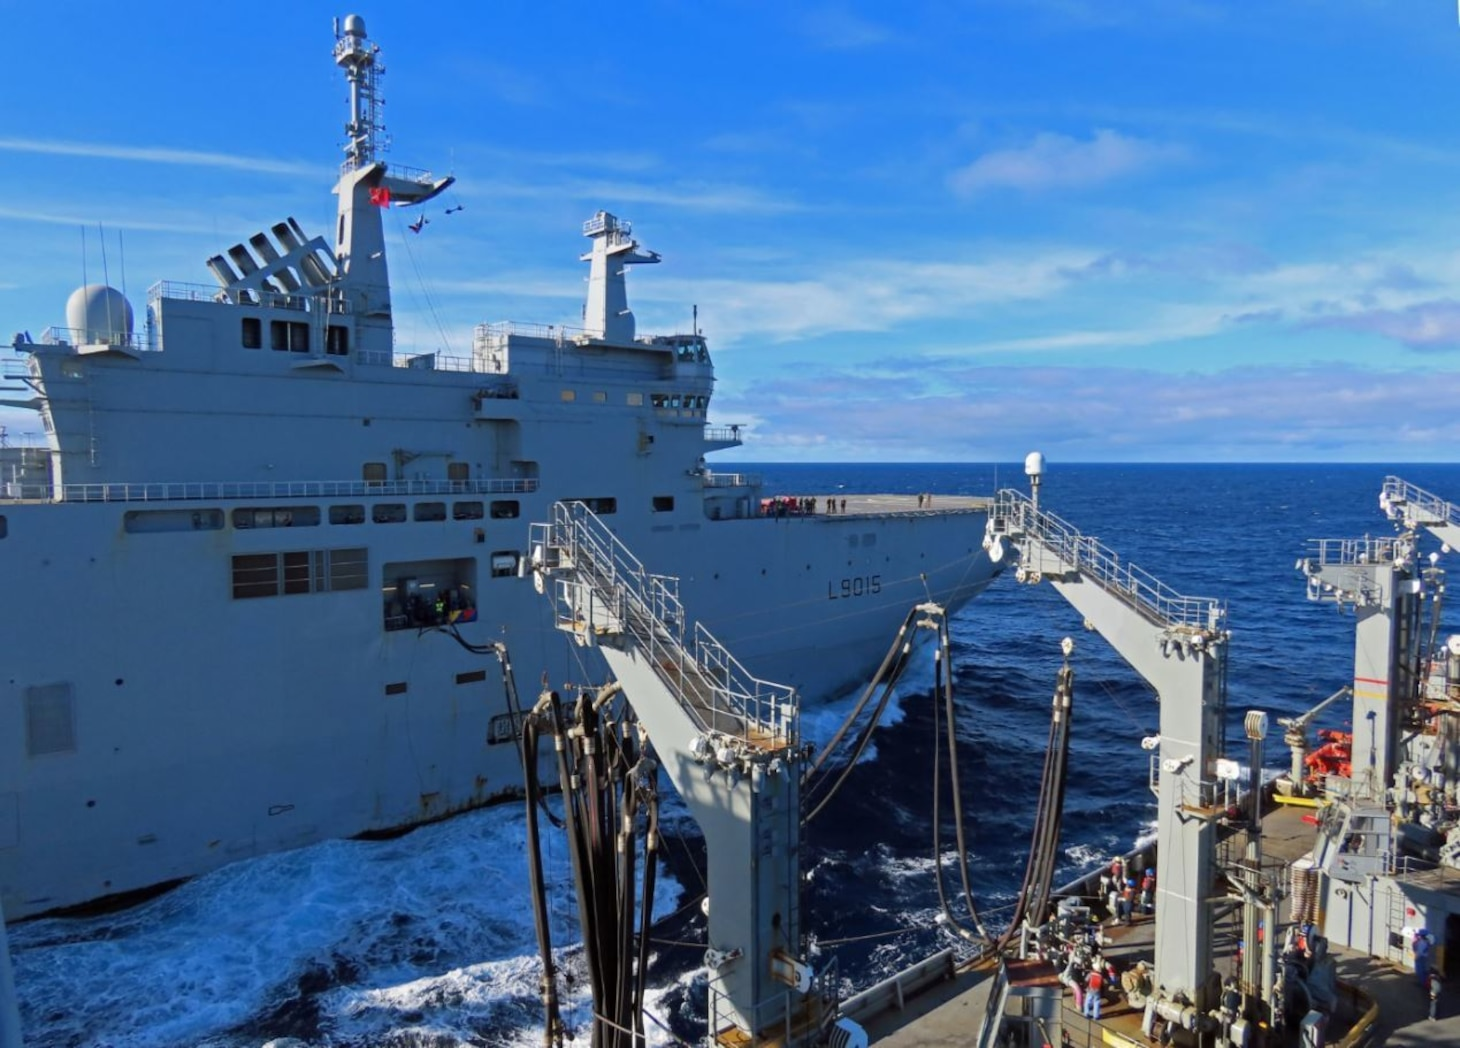 USNS Laramie (T-AO 203) completes a refueling-at-sea with French Navy LHD Dixmude (L9015) in the Atlantic Ocean, Dec. 10.